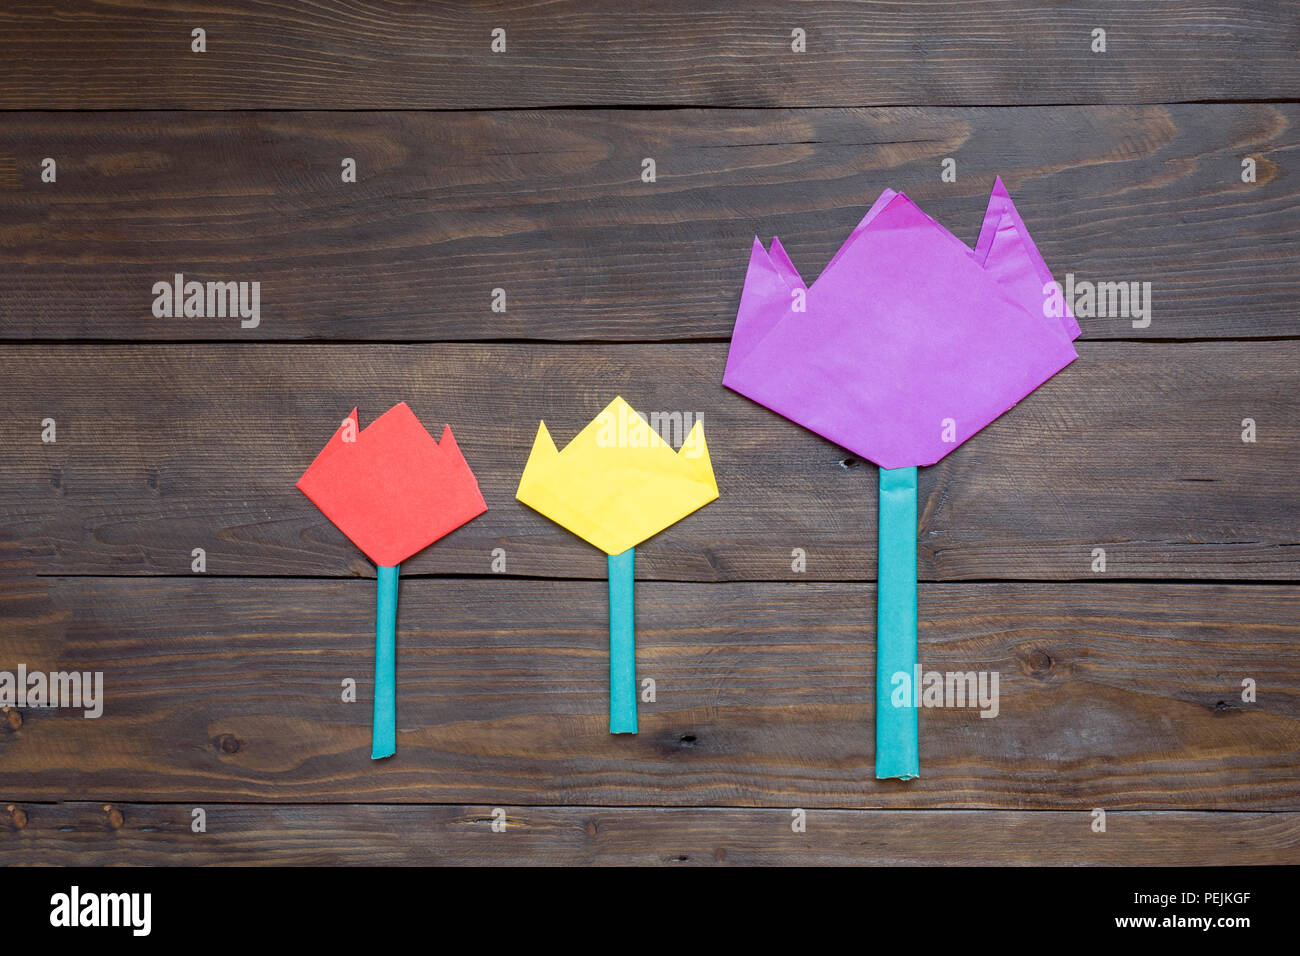 Childrens Crafts Origami Paper Flowers On A Dark Wooden Table